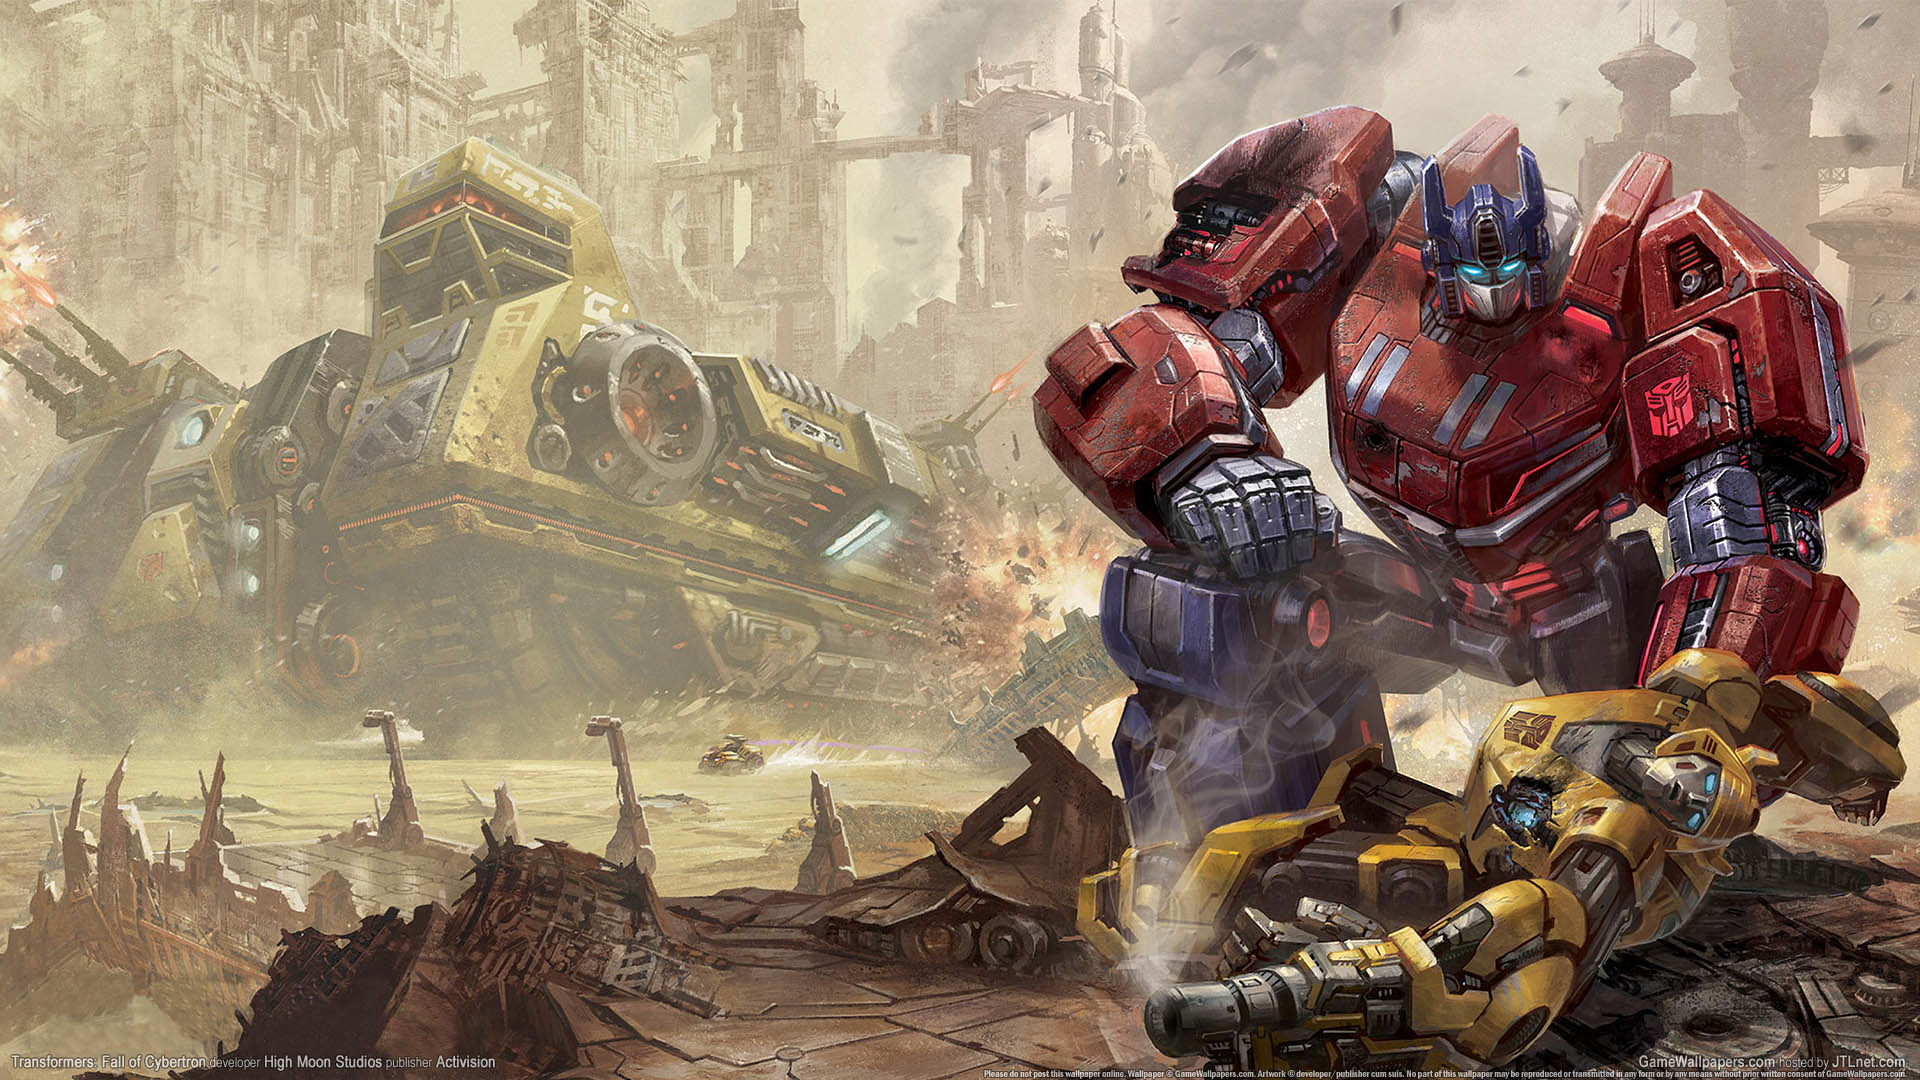 transformers: fall of cybertron wallpaper 01 1920x1080